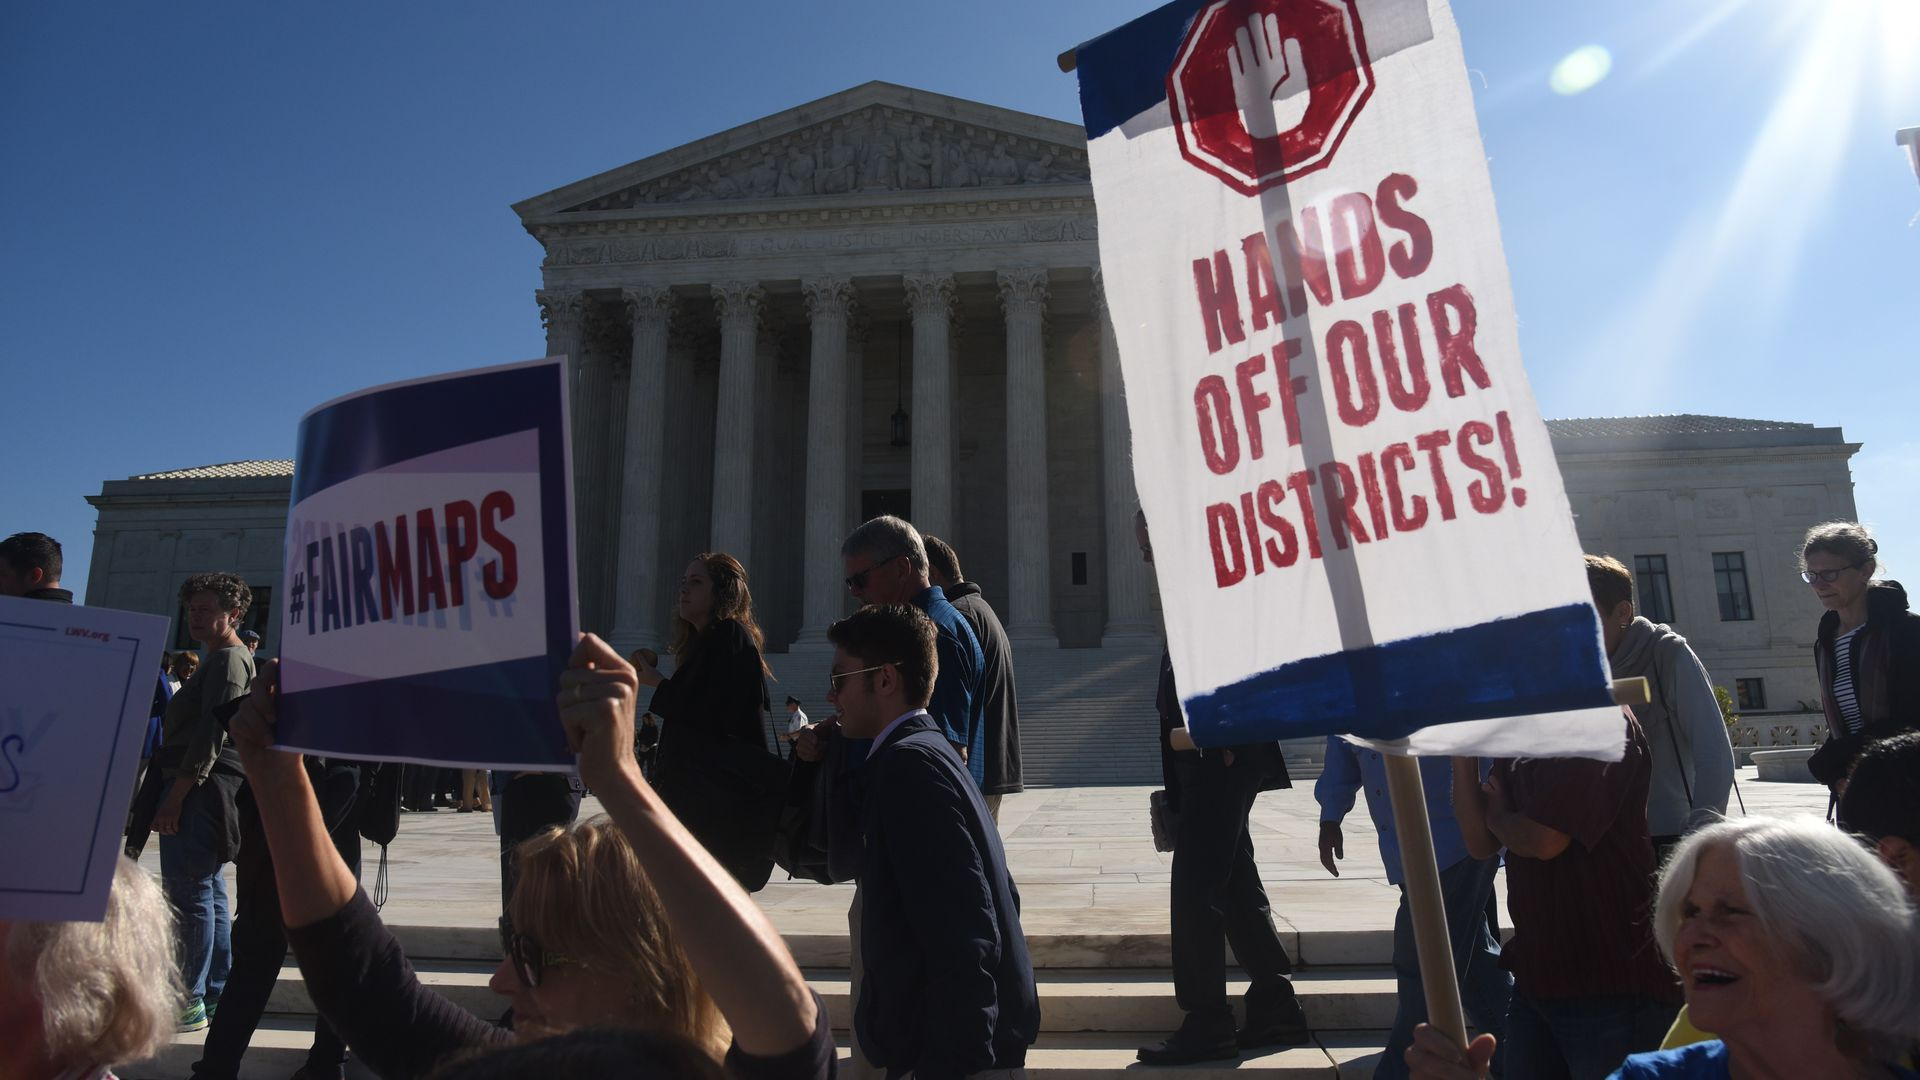 Demonstrators gather outside of the Supreme Court during an oral arguments in Gill v. Whitford last October. Photo: Olivier Douliery/Getty Images